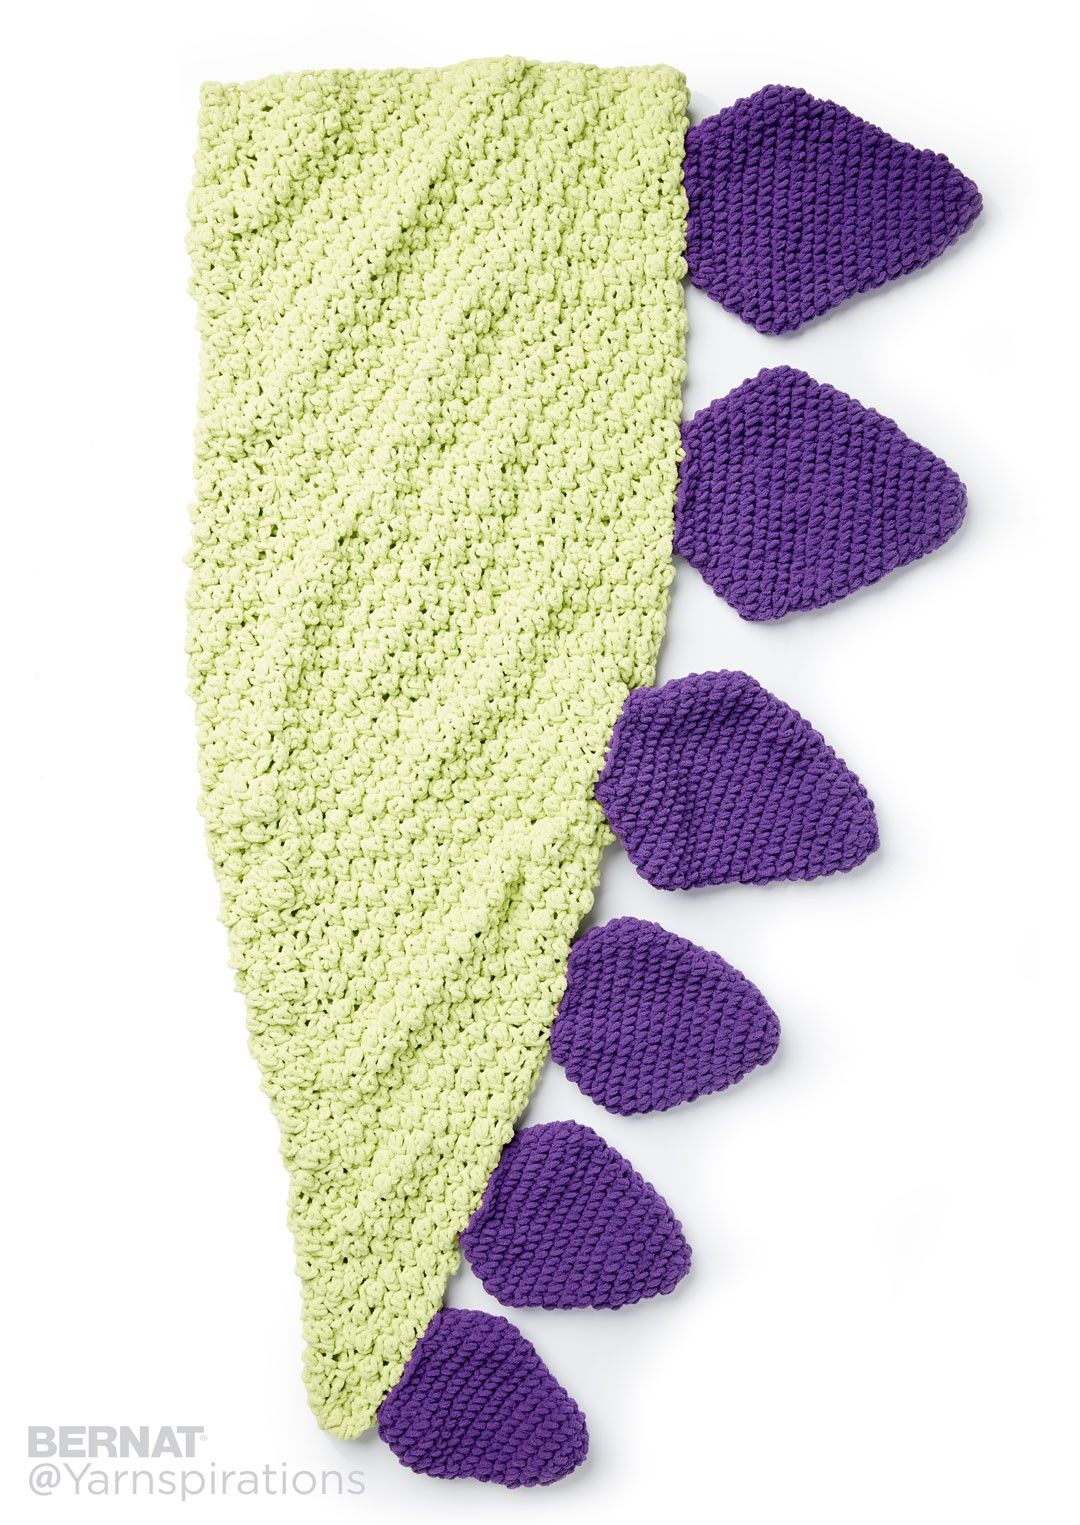 Dino Tail Crochet Snuggle Sack - Patterns | Yarnspirations ...